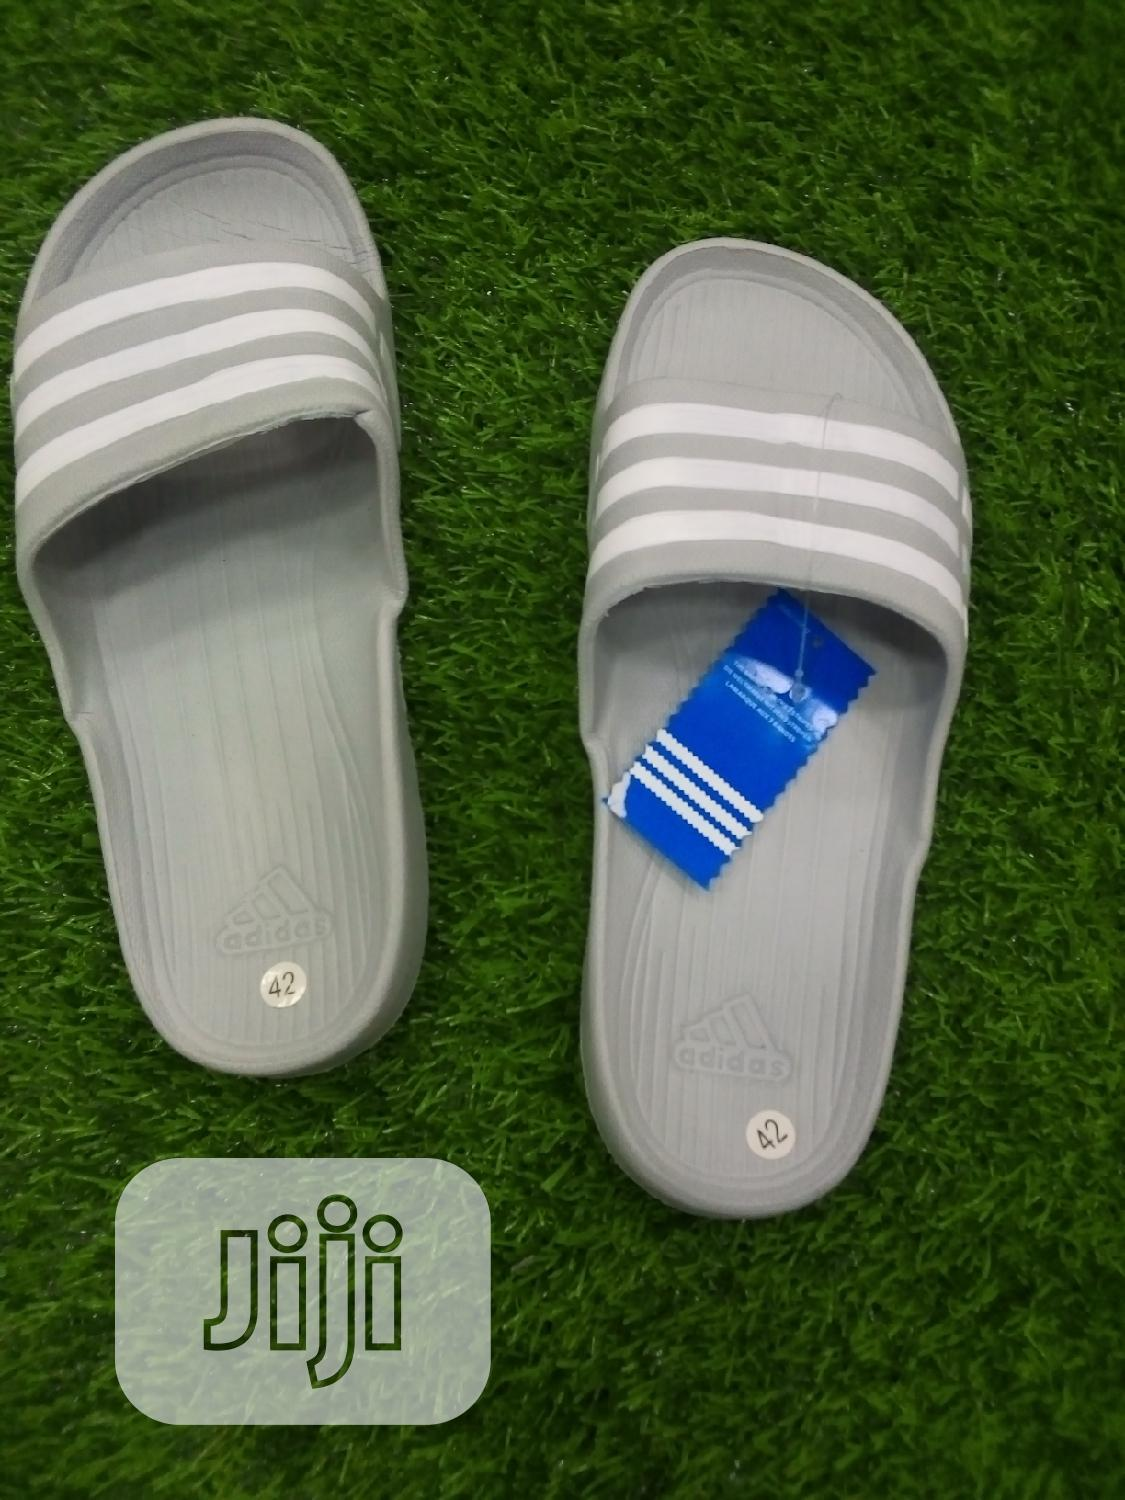 Brand New Adidas Slide | Shoes for sale in Apapa, Lagos State, Nigeria